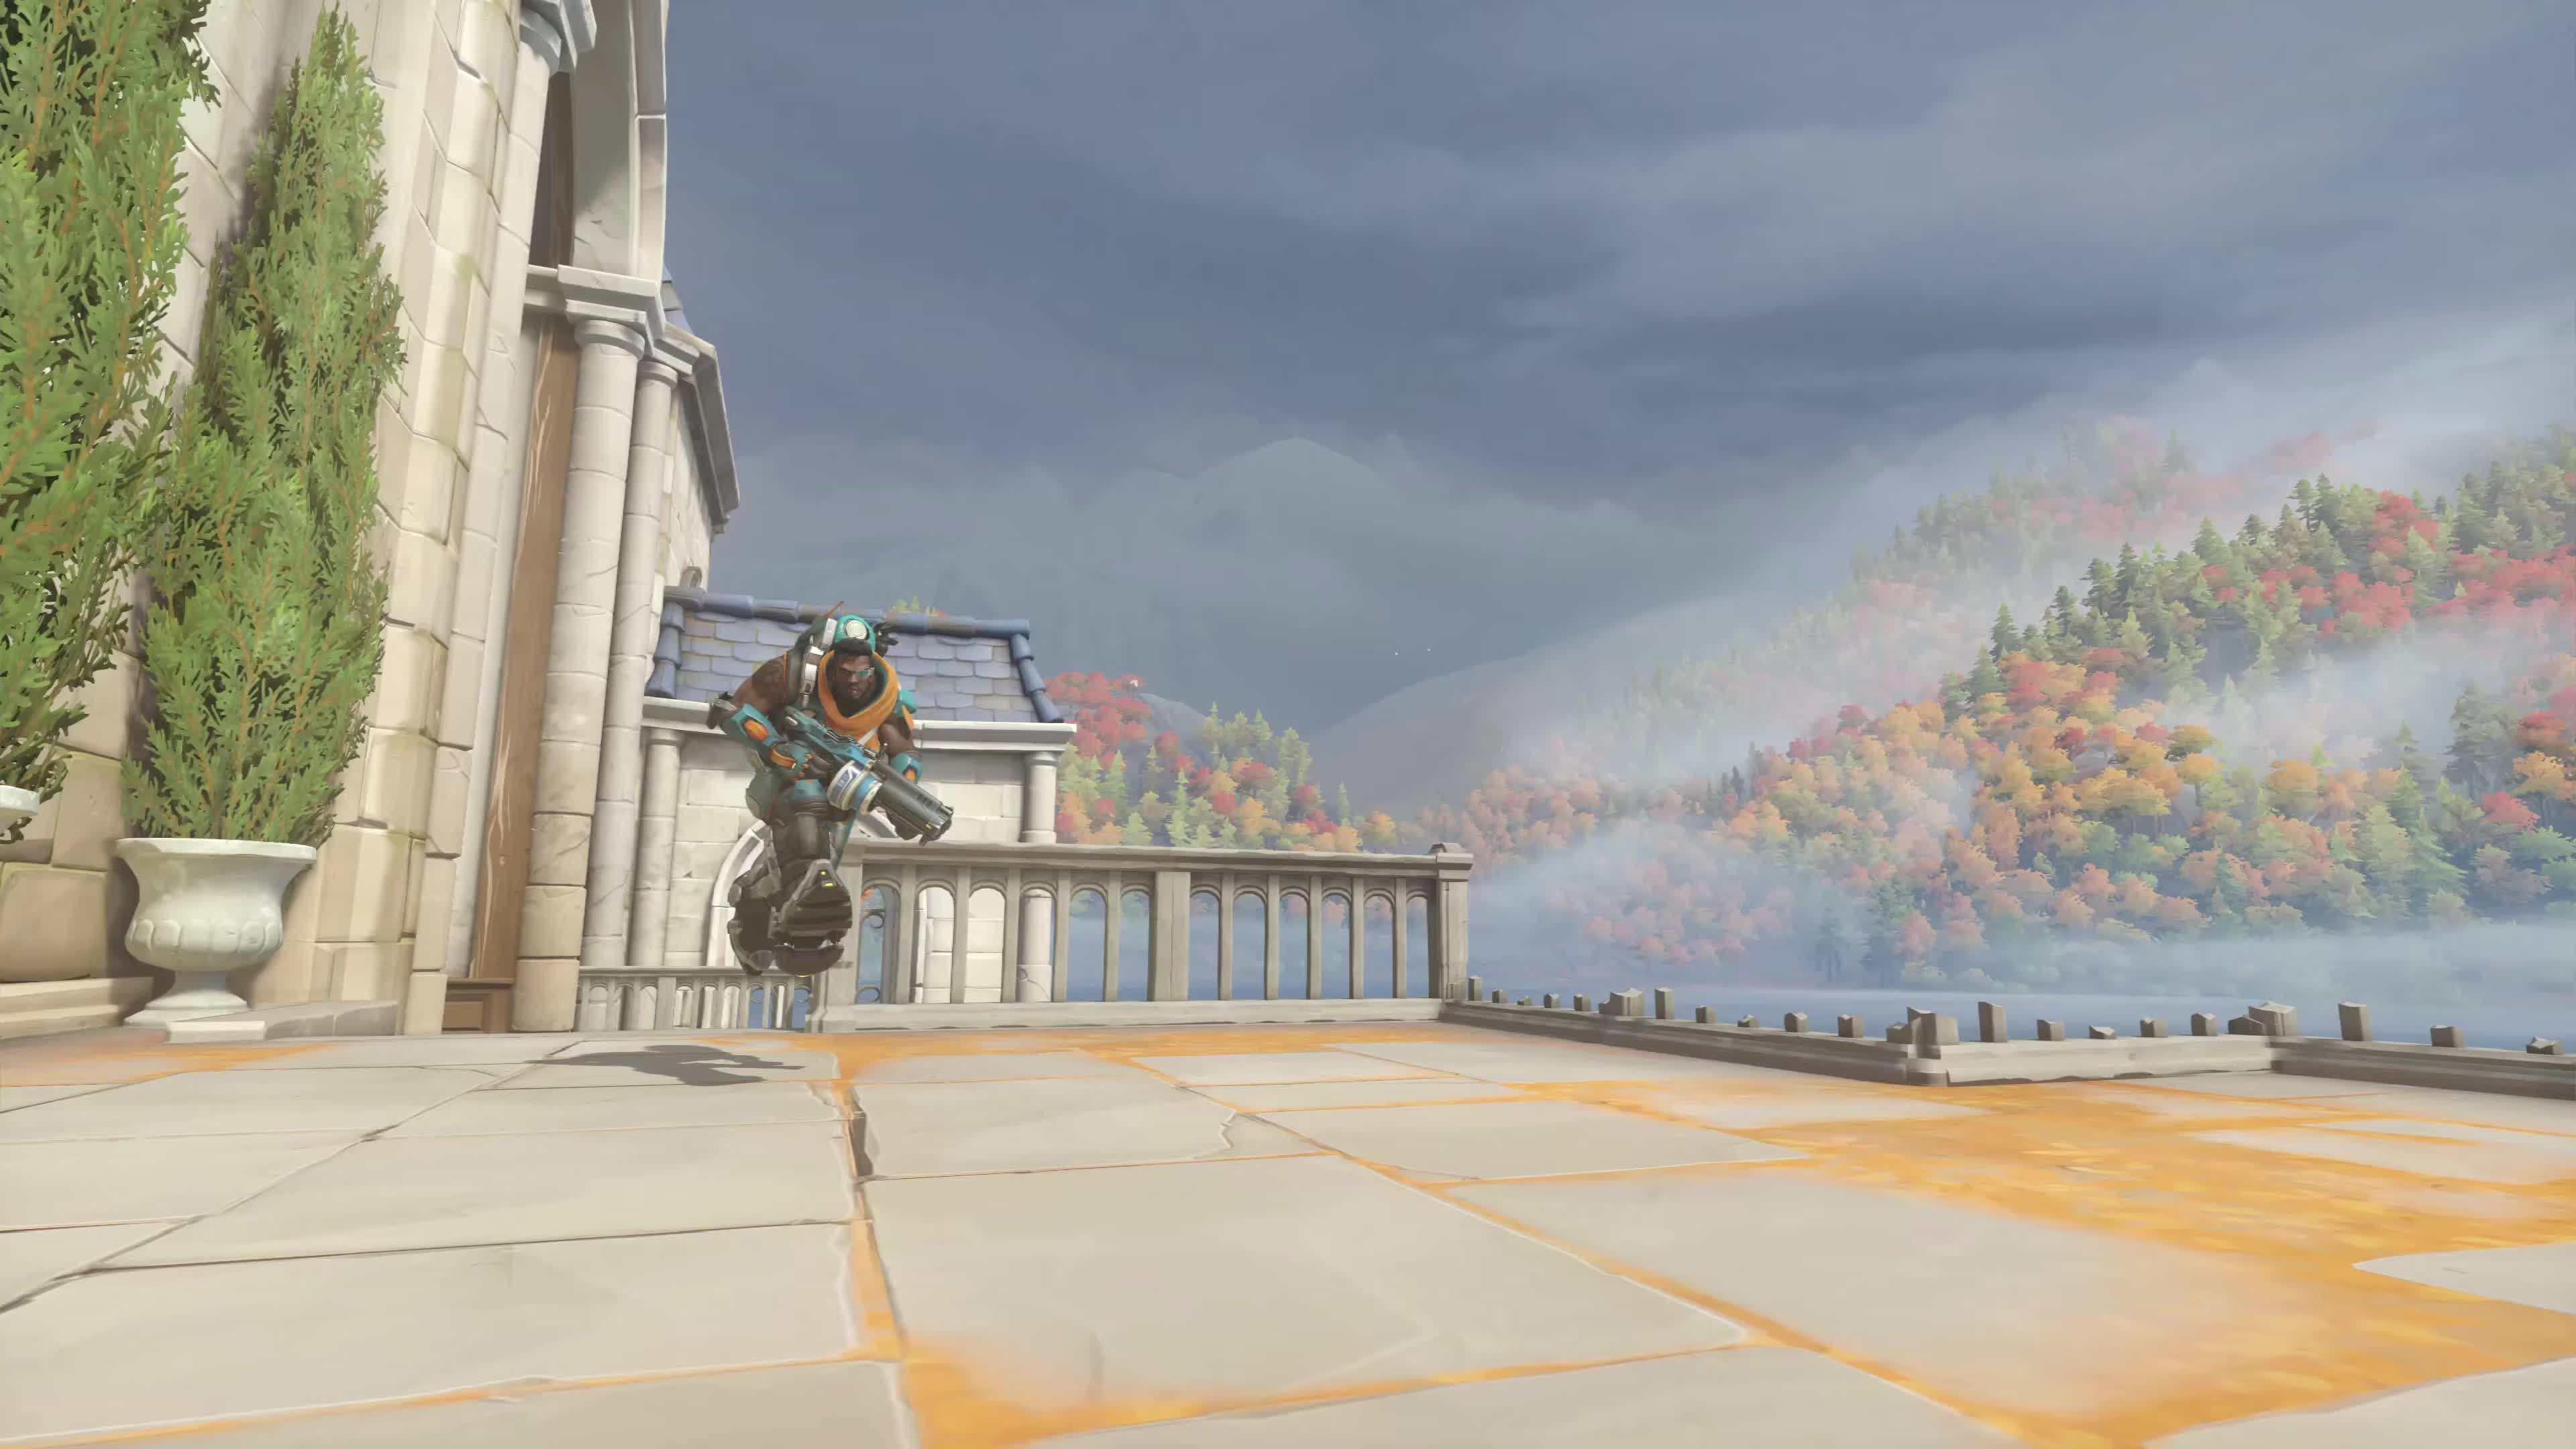 Baptise, New Hero, Overwatch, Baptiste Highlight Intros With A Twist GIFs